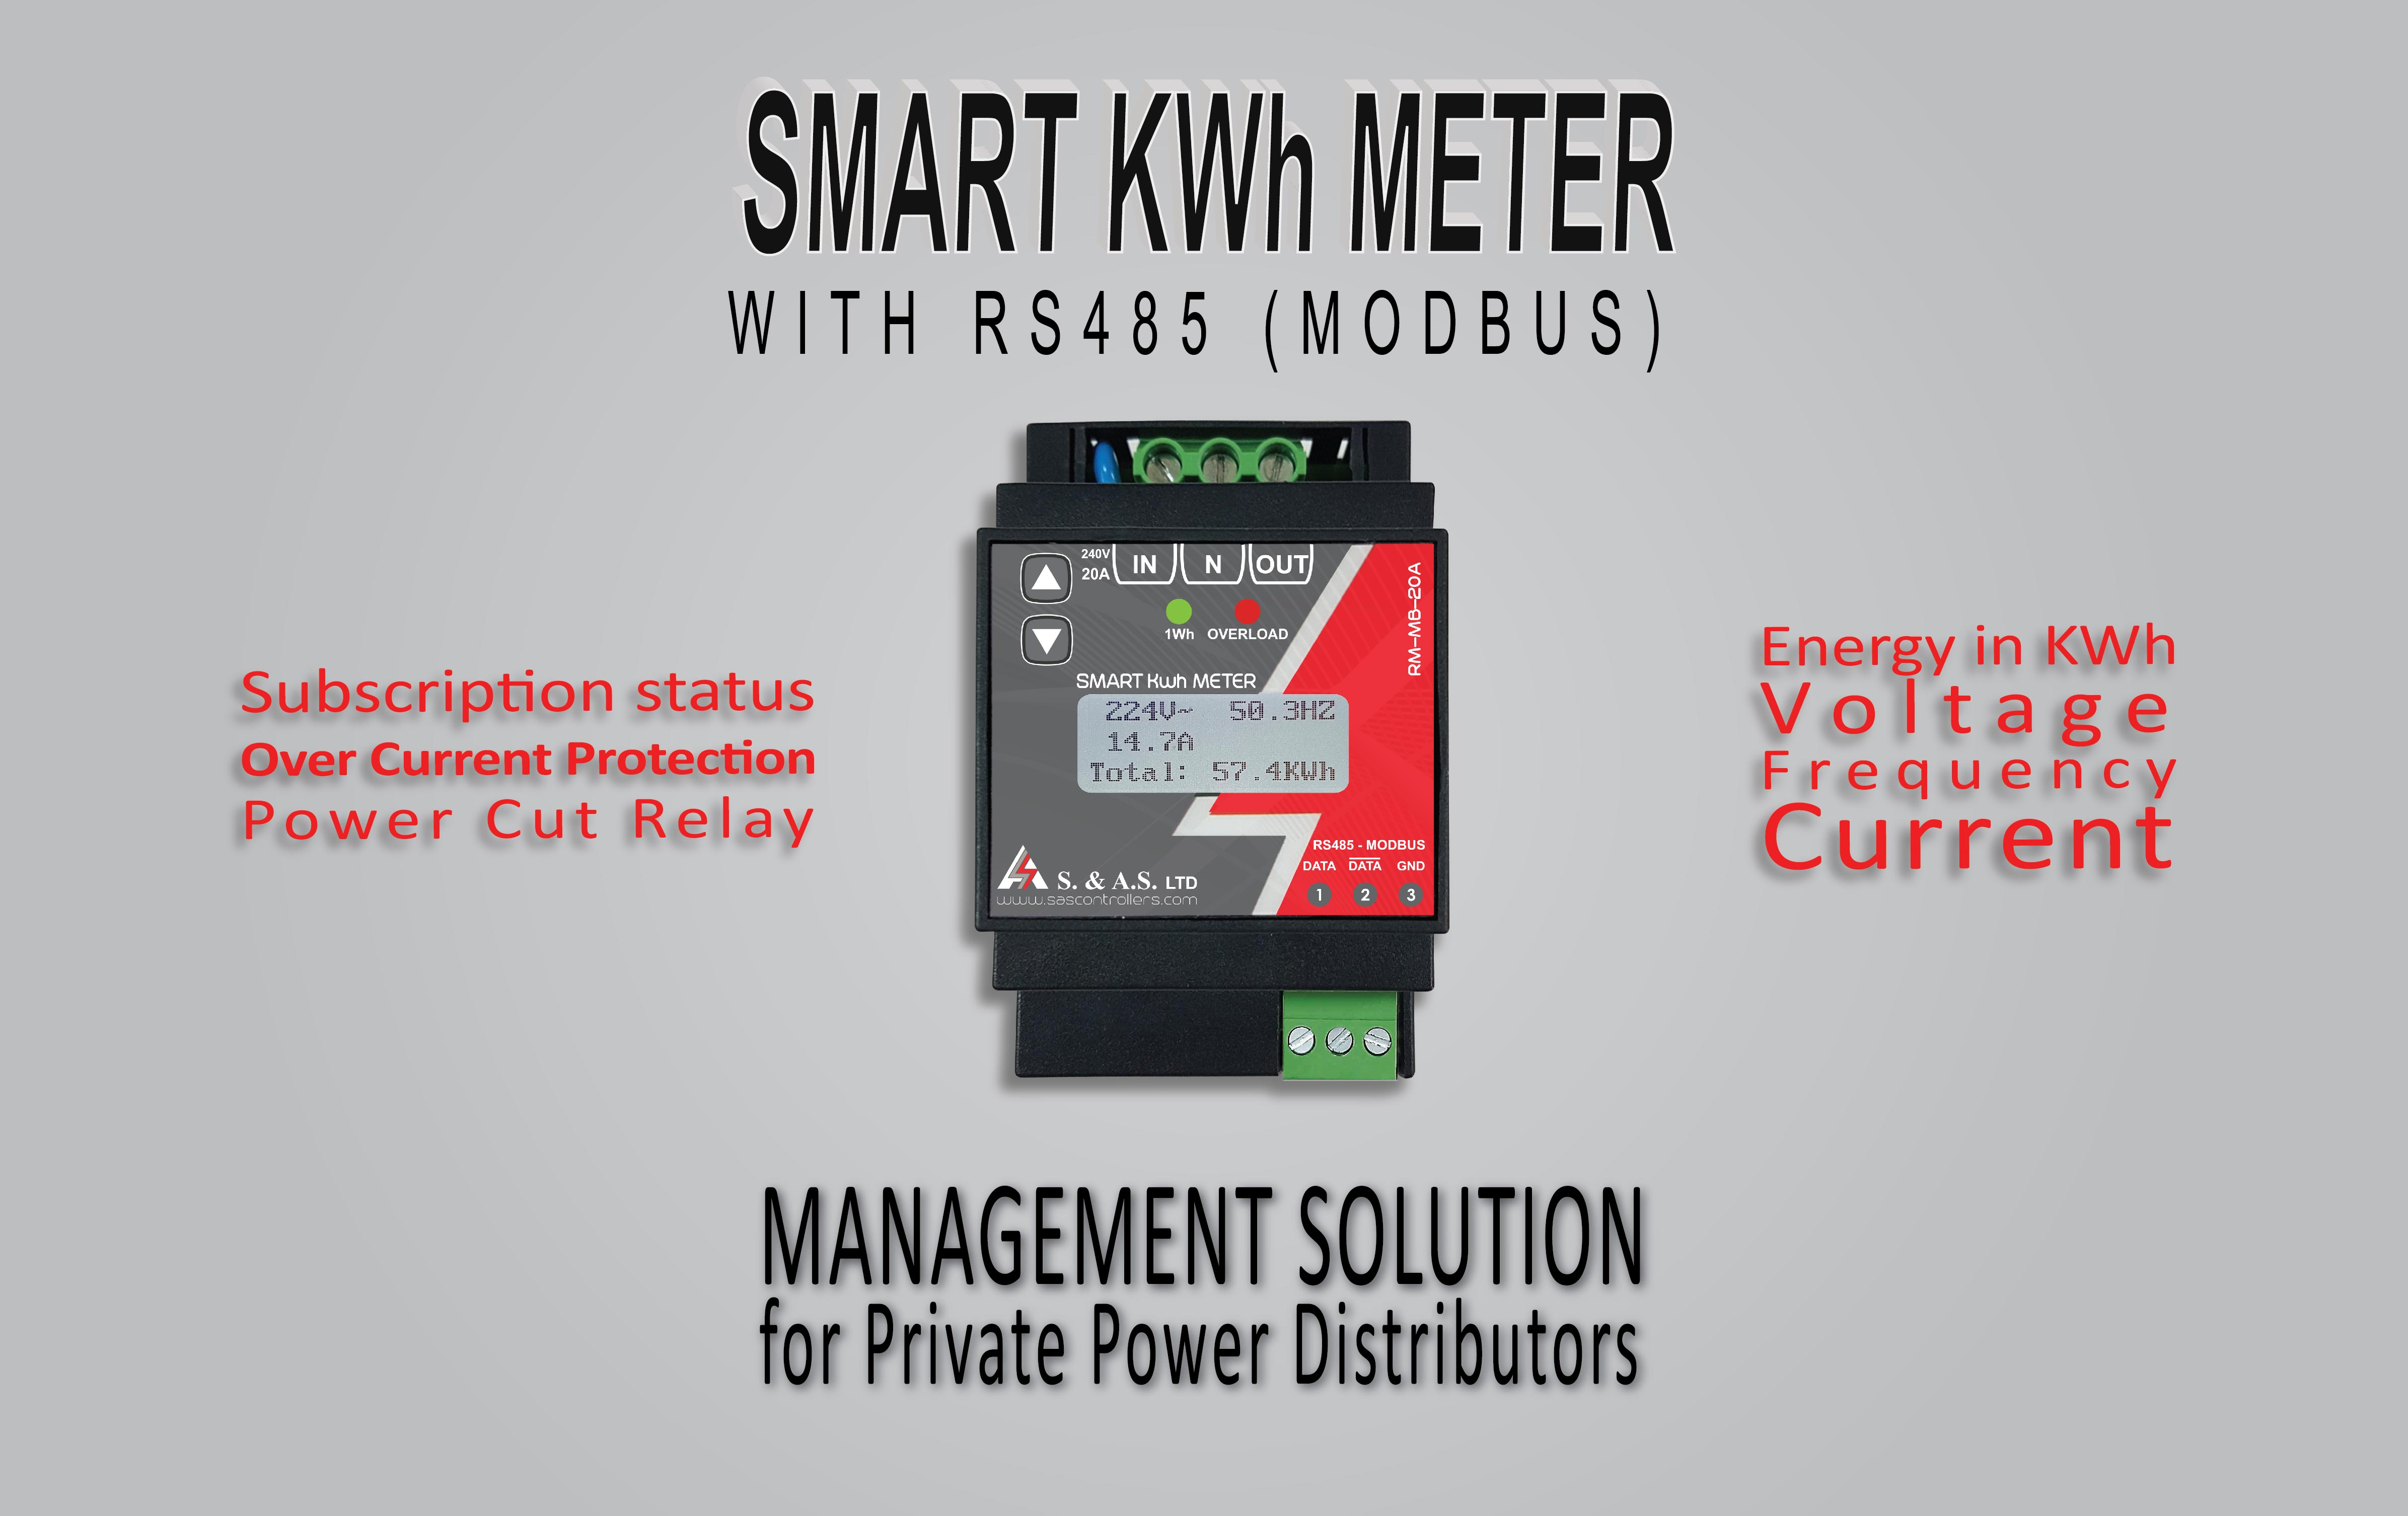 SMART KWHMETER WITH RS485 (MODDBUS)